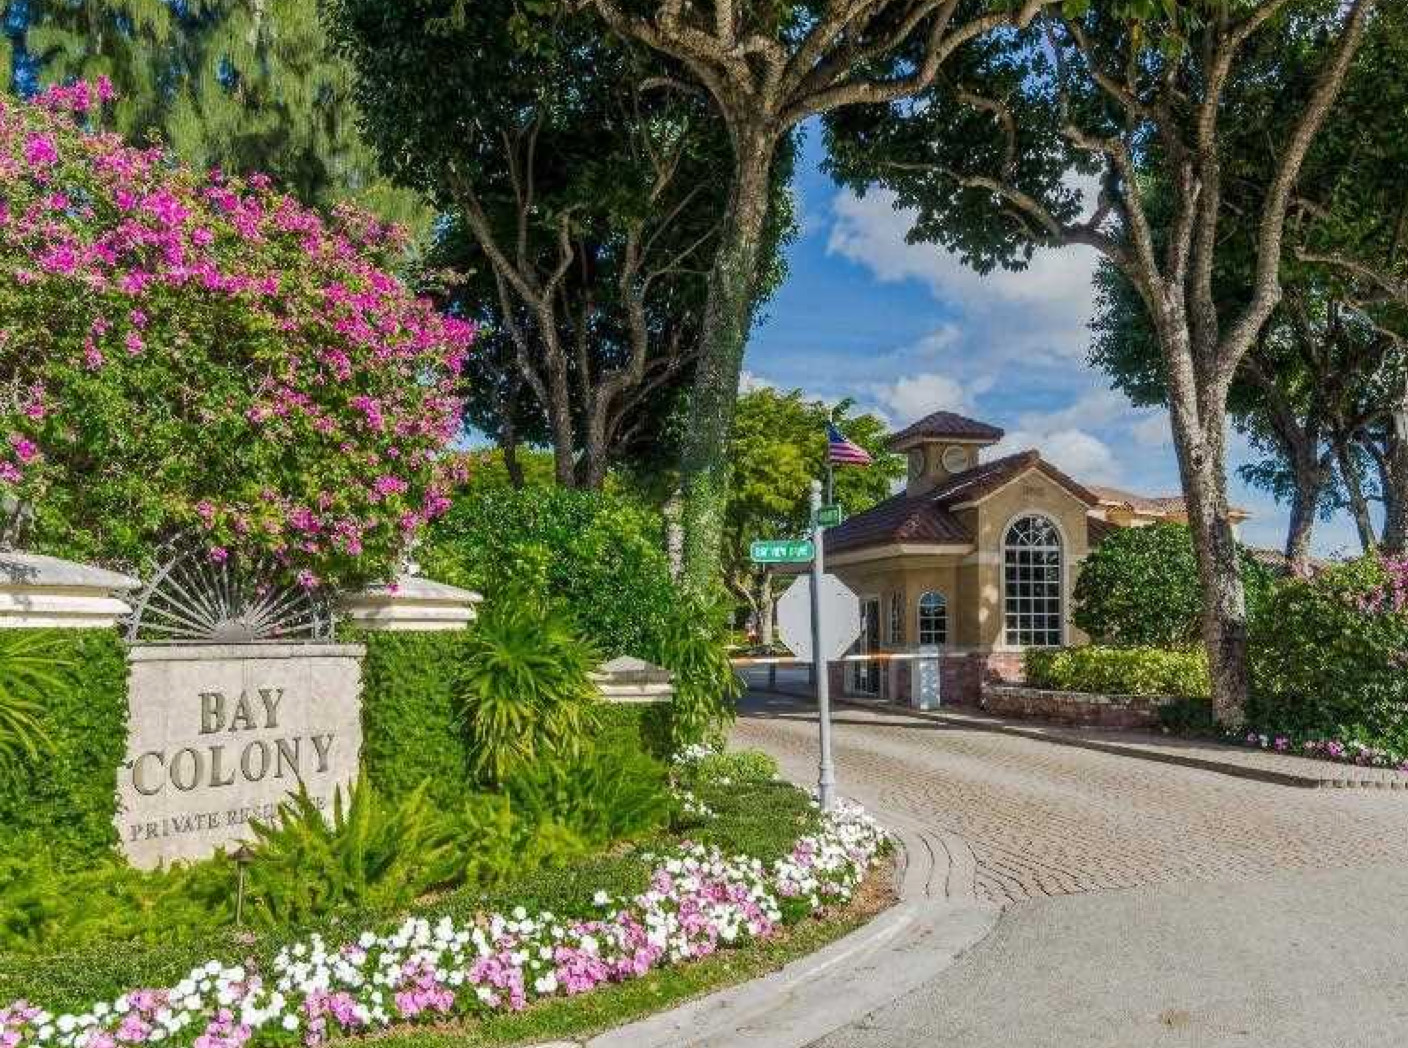 Bay Colony Homes for sale in Fort Lauderdale